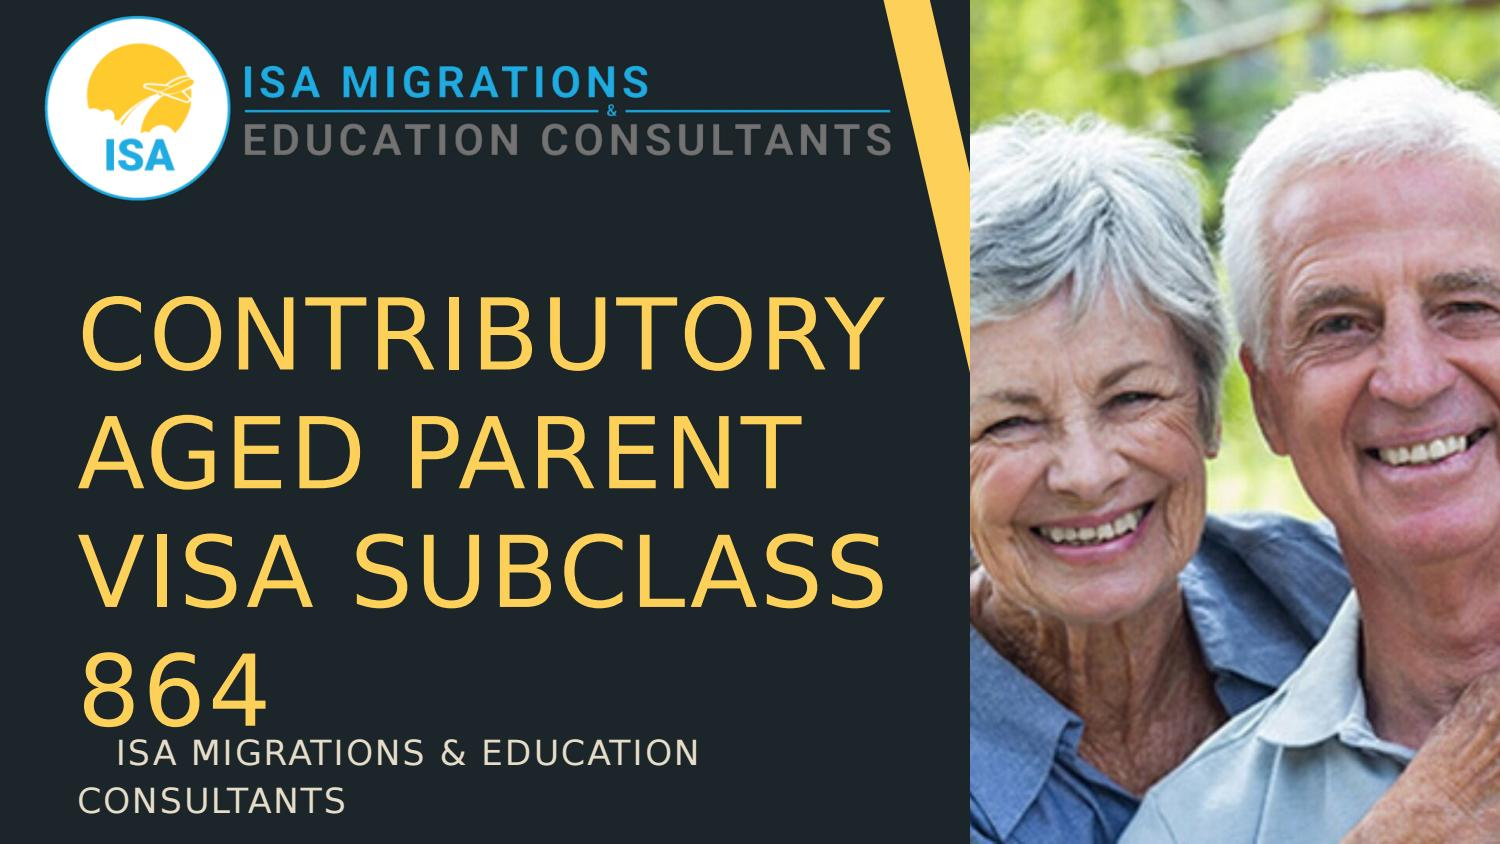 Contributory Aged Parent Visa Subclass 864 Isa Migrations Education Consultants By J Smith01 Issuu